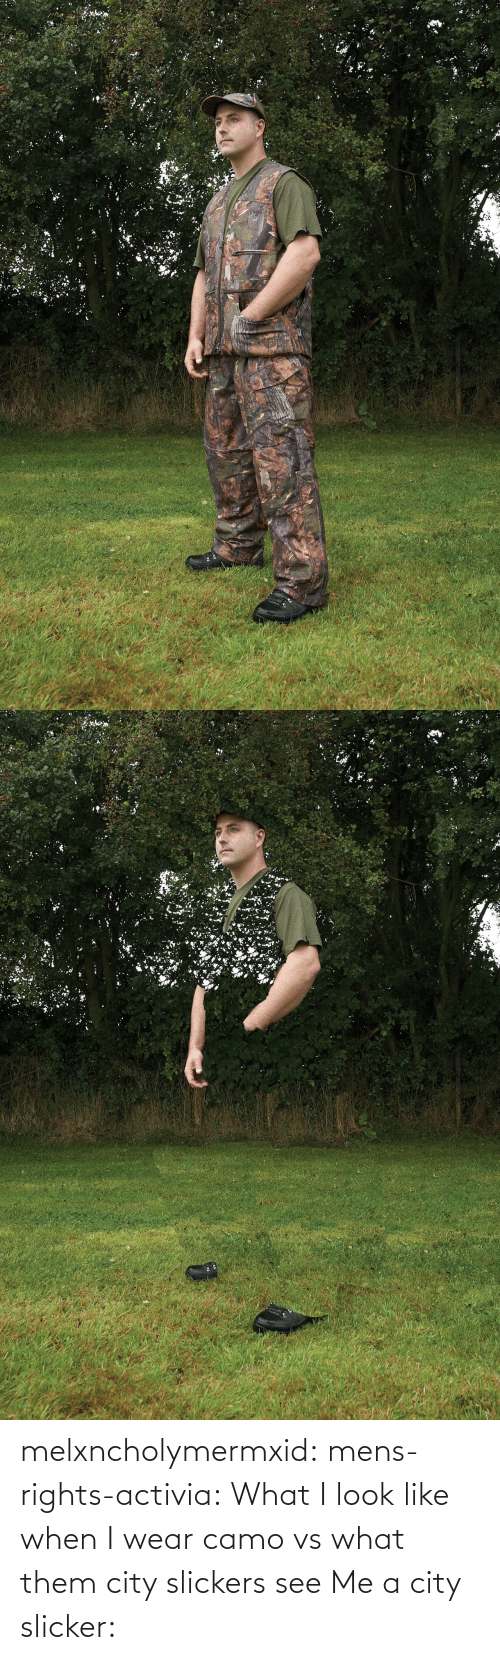 Rights: melxncholymermxid: mens-rights-activia:  What I look like when I wear camo vs what them city slickers see   Me a city slicker: